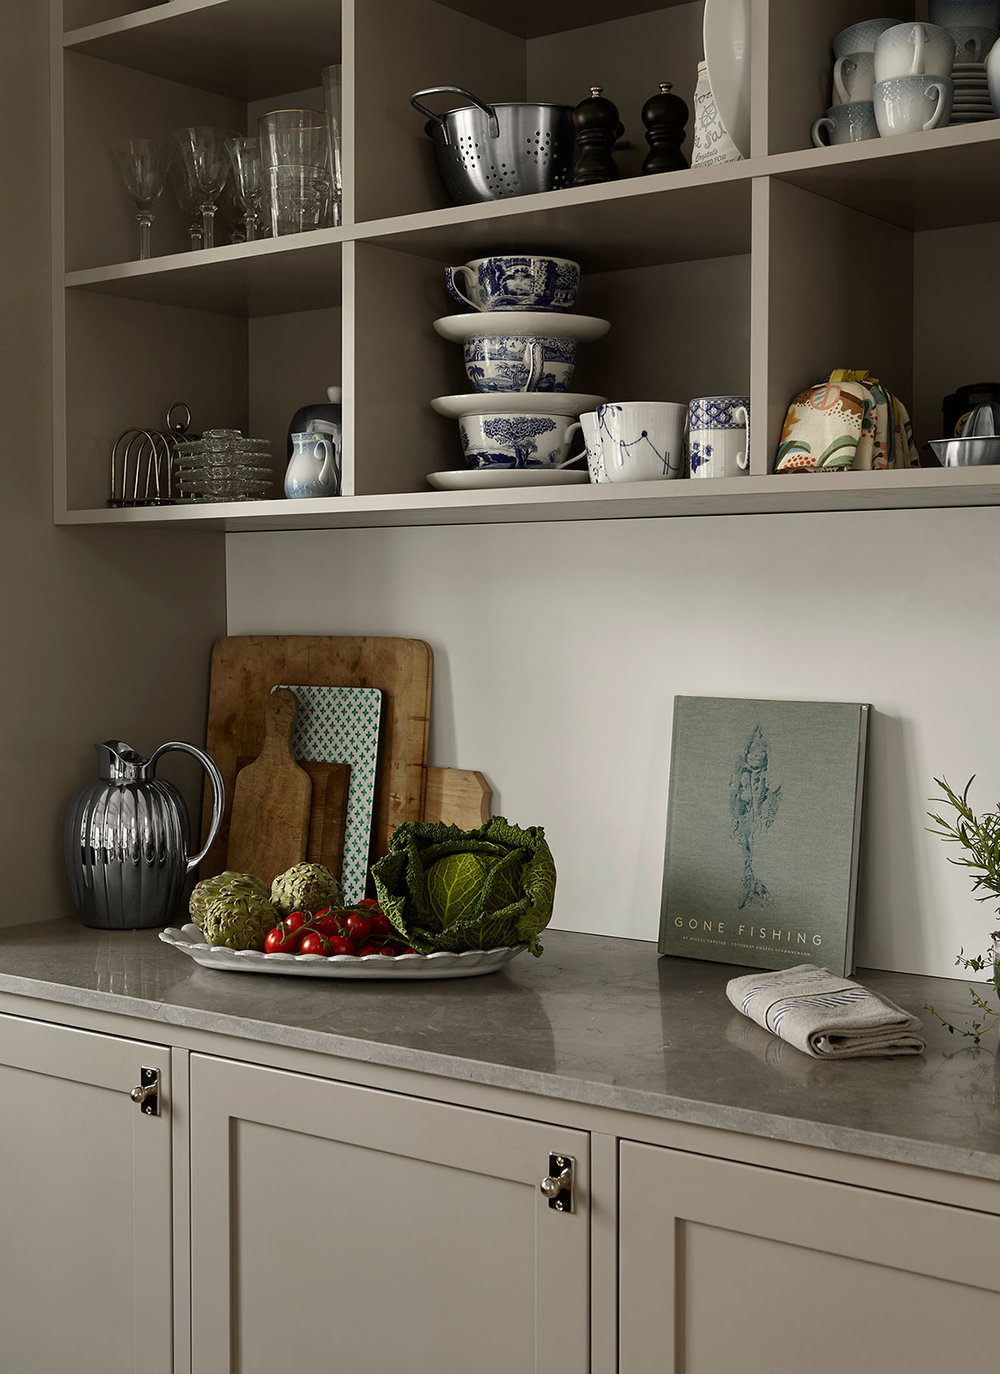 Johanna Bradfords blog, kitchen in grey cabinets and limestone countertop